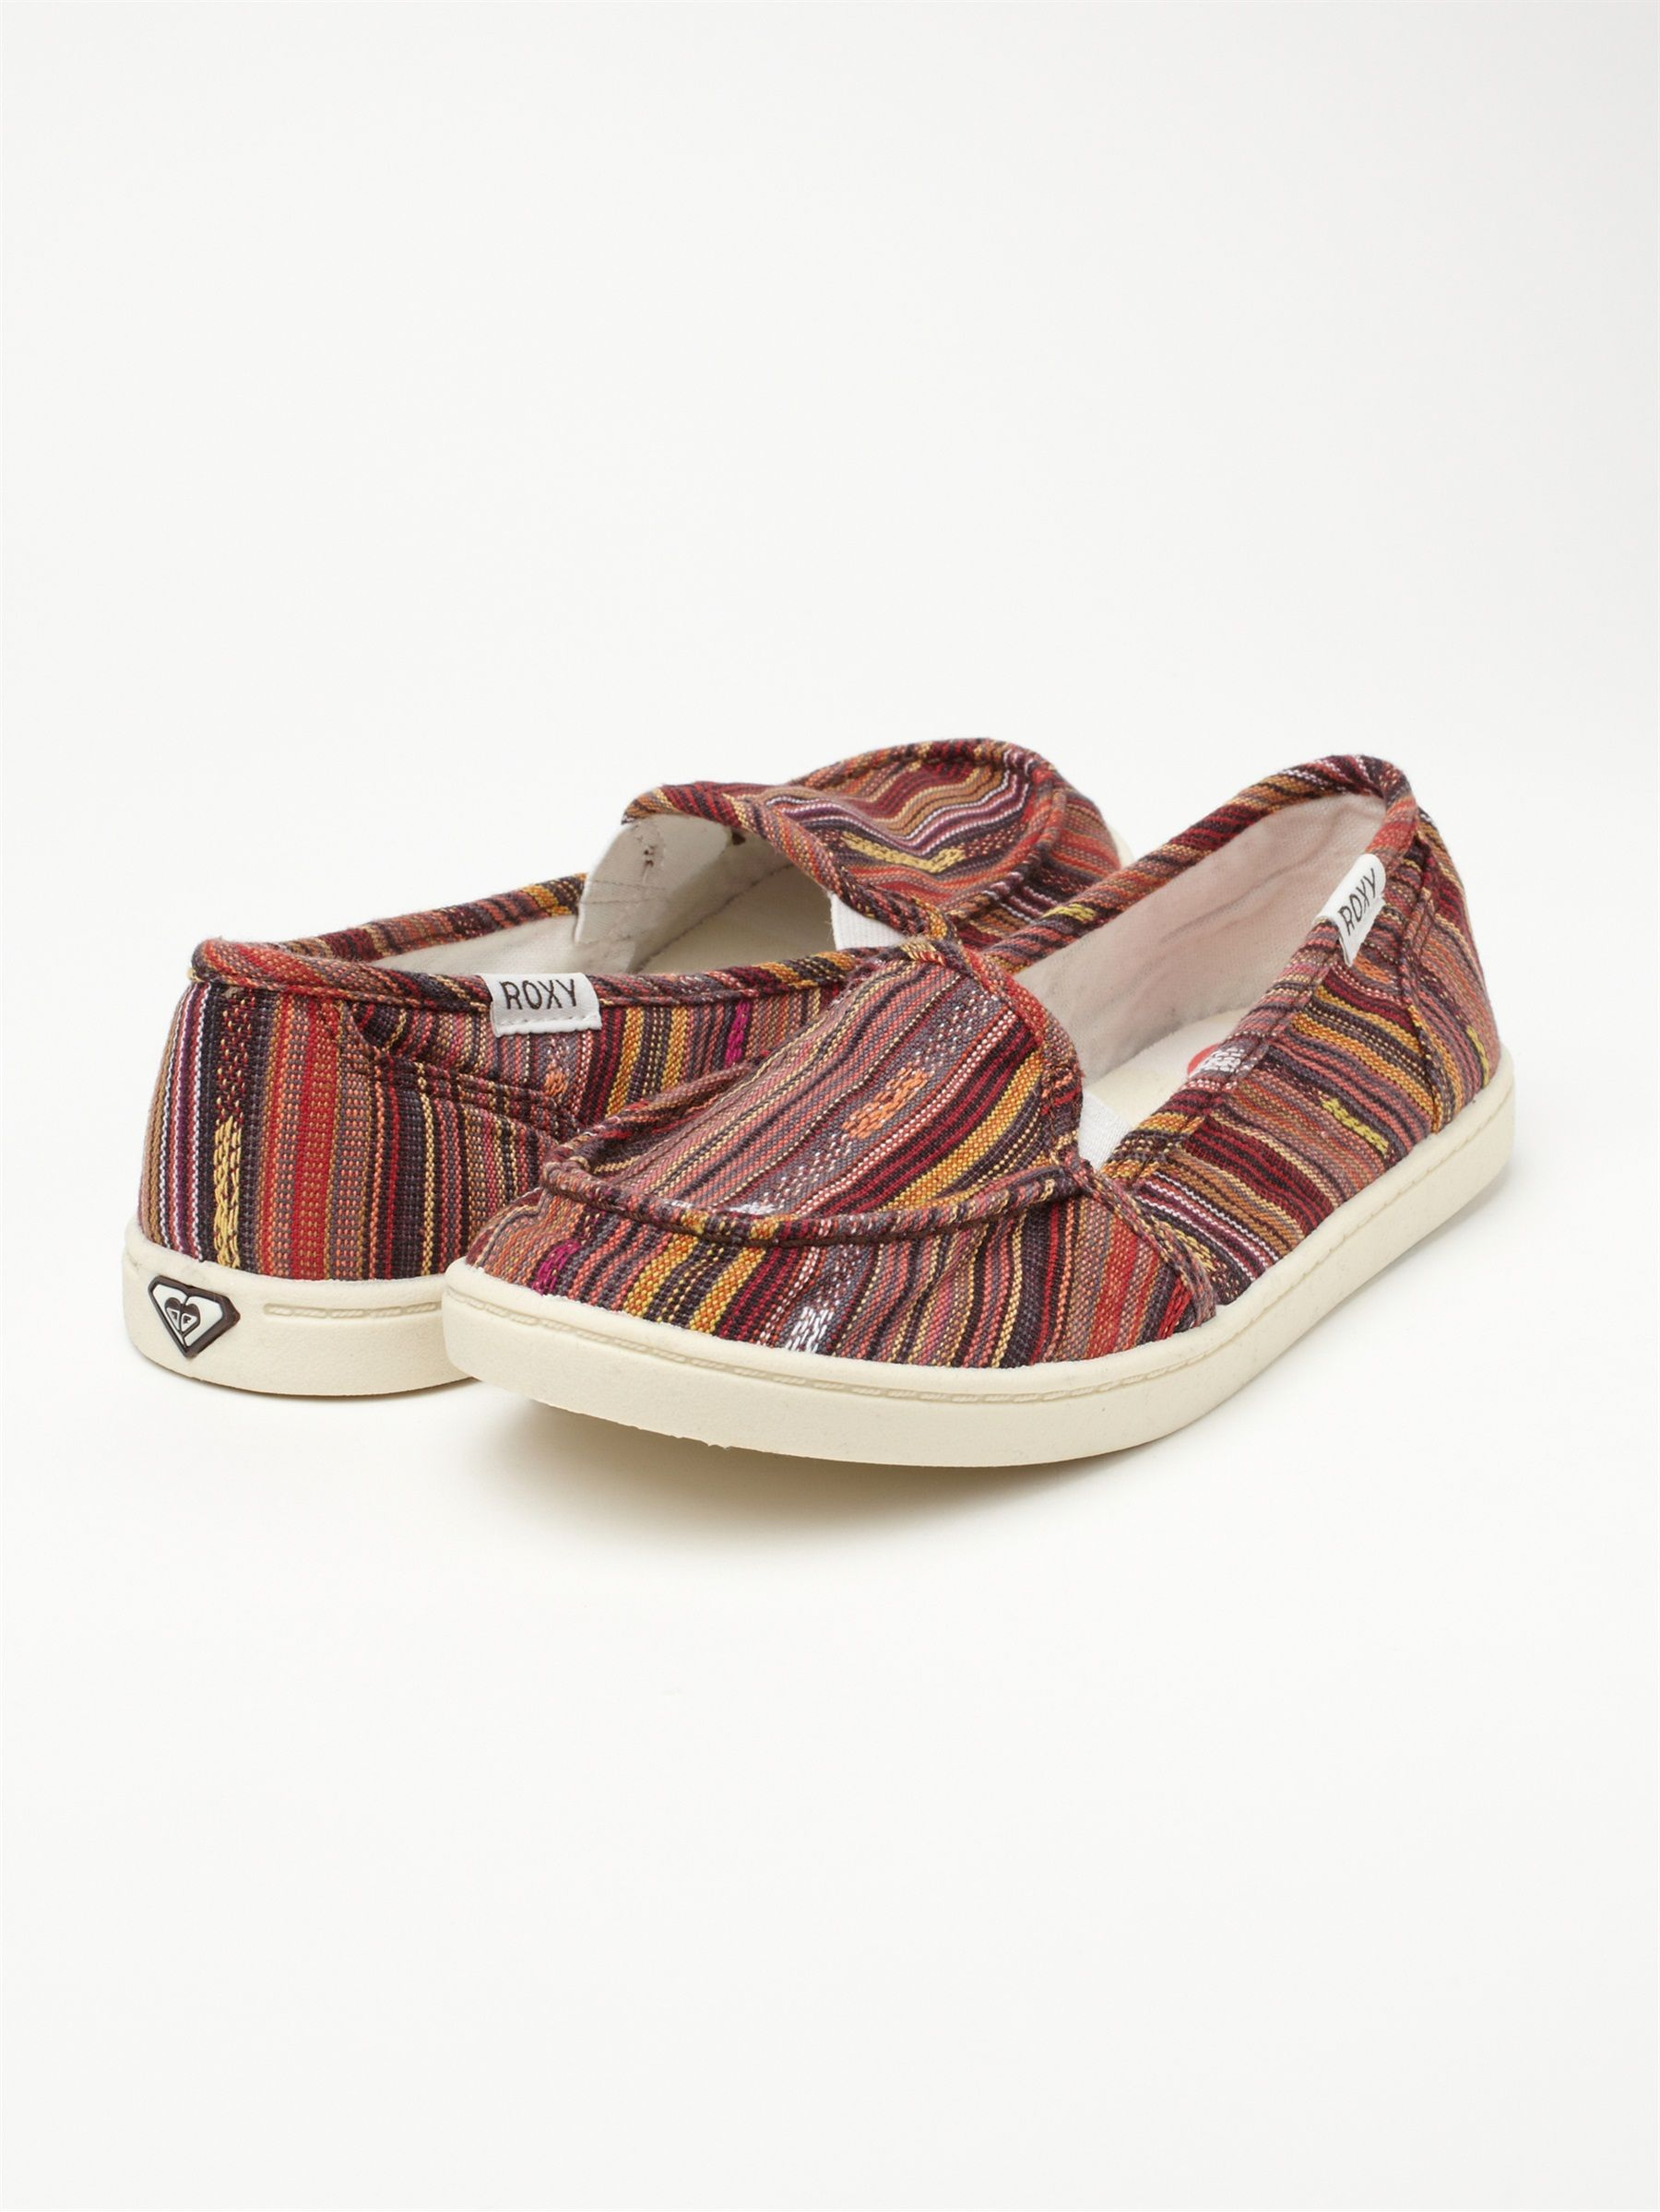 Lido shoes with images roxy shoes shoes slip on shoes